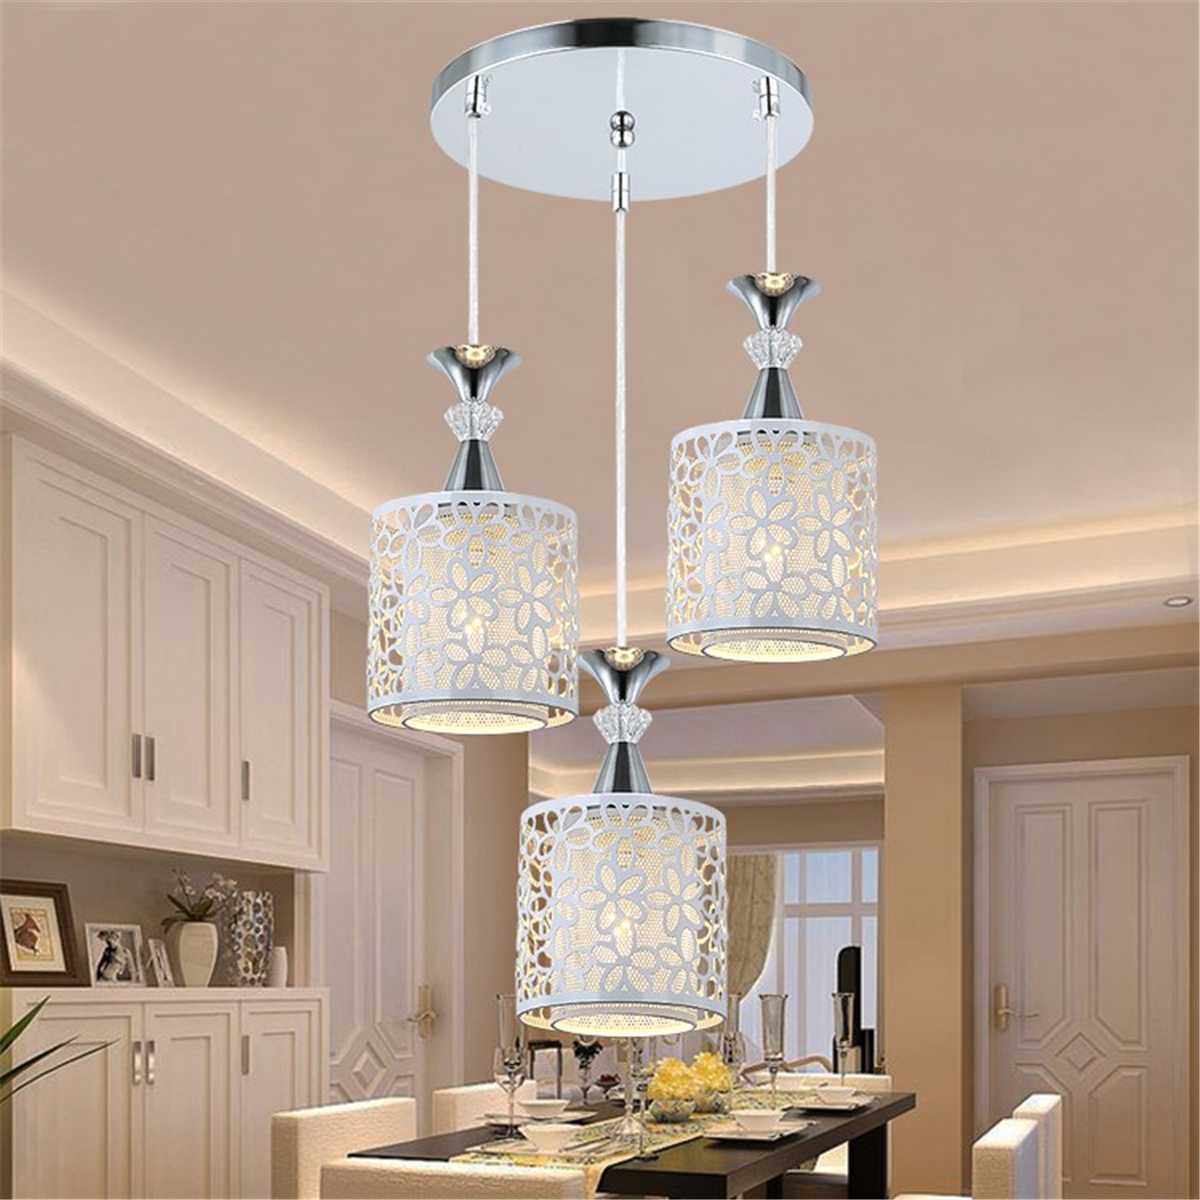 US $12.72 19% OFF|Modern Crystal Ceiling Lamps LED Lamps Living Room Dining  Room Glass Ceiling lamp led lustre light ceiling lights-in Ceiling Lights  ...